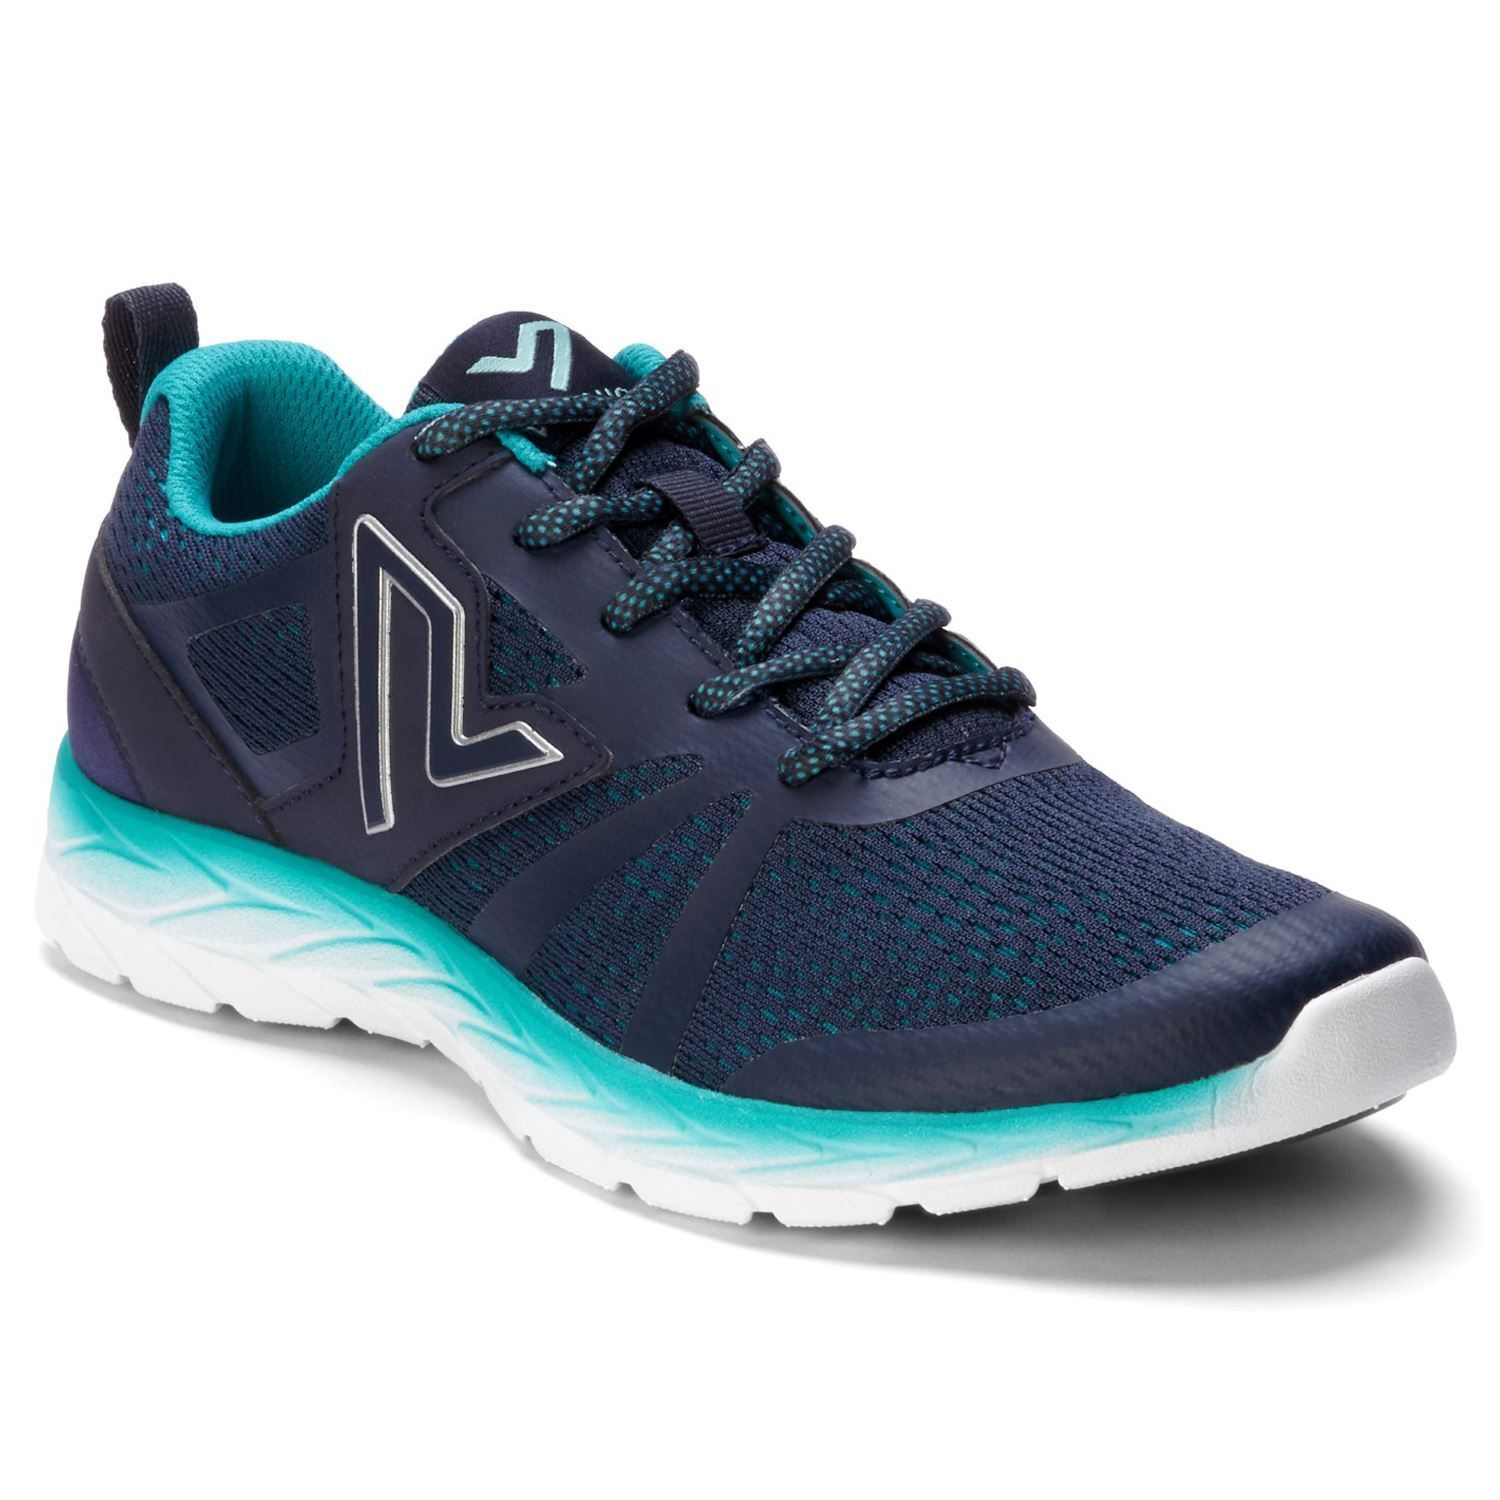 Vionic Brisk Miles bluee Teal Womens Athletic Mesh Trainers